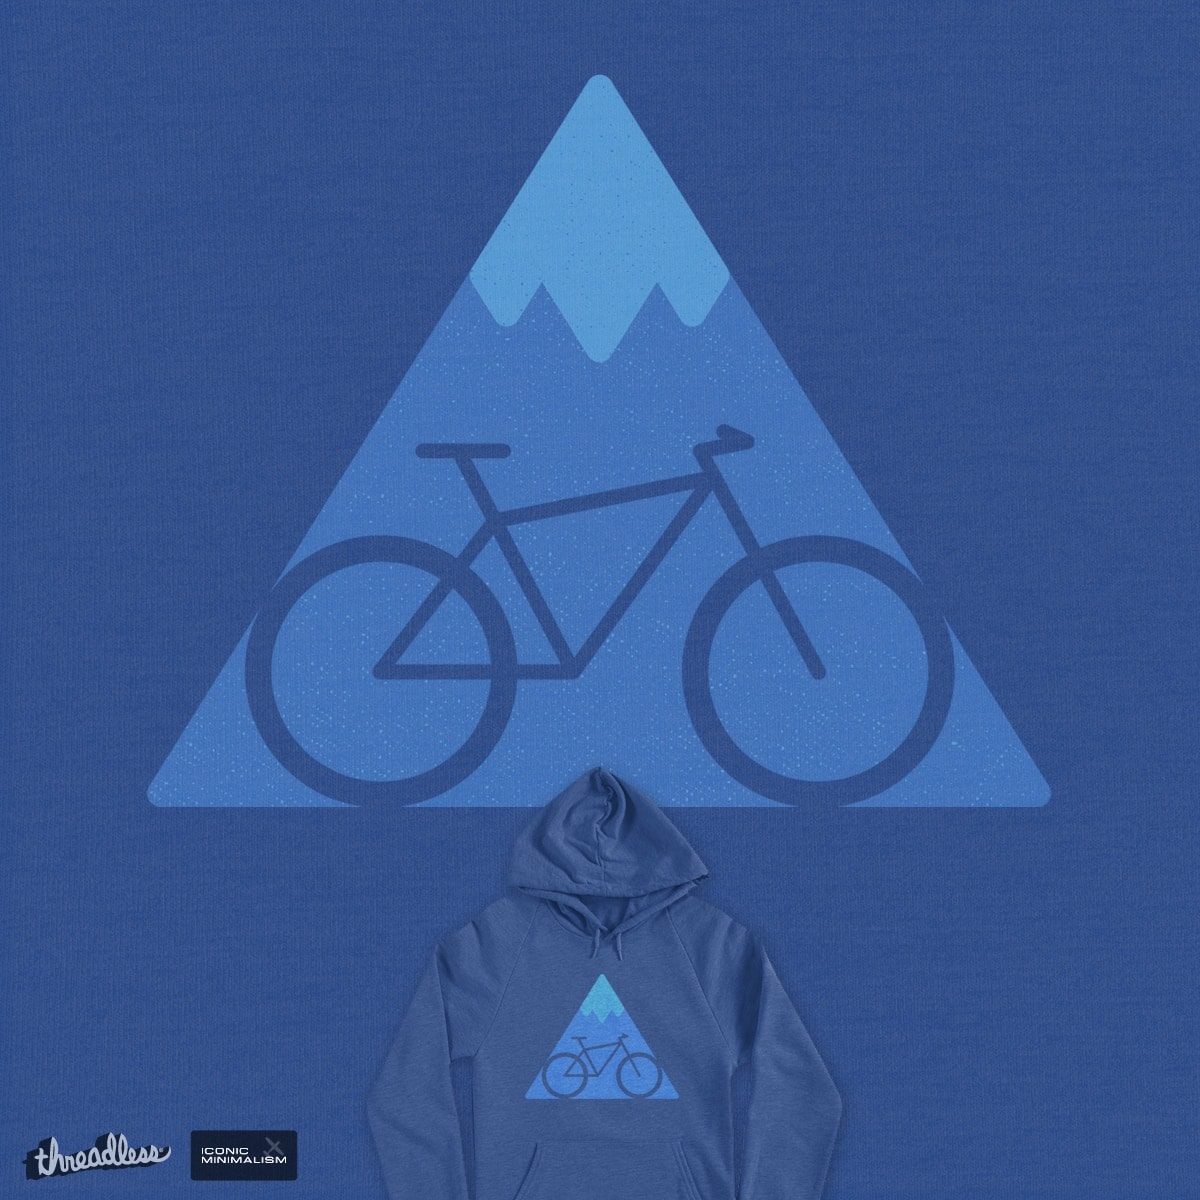 Off the Beaten Track by ThePaperCrane on Threadless